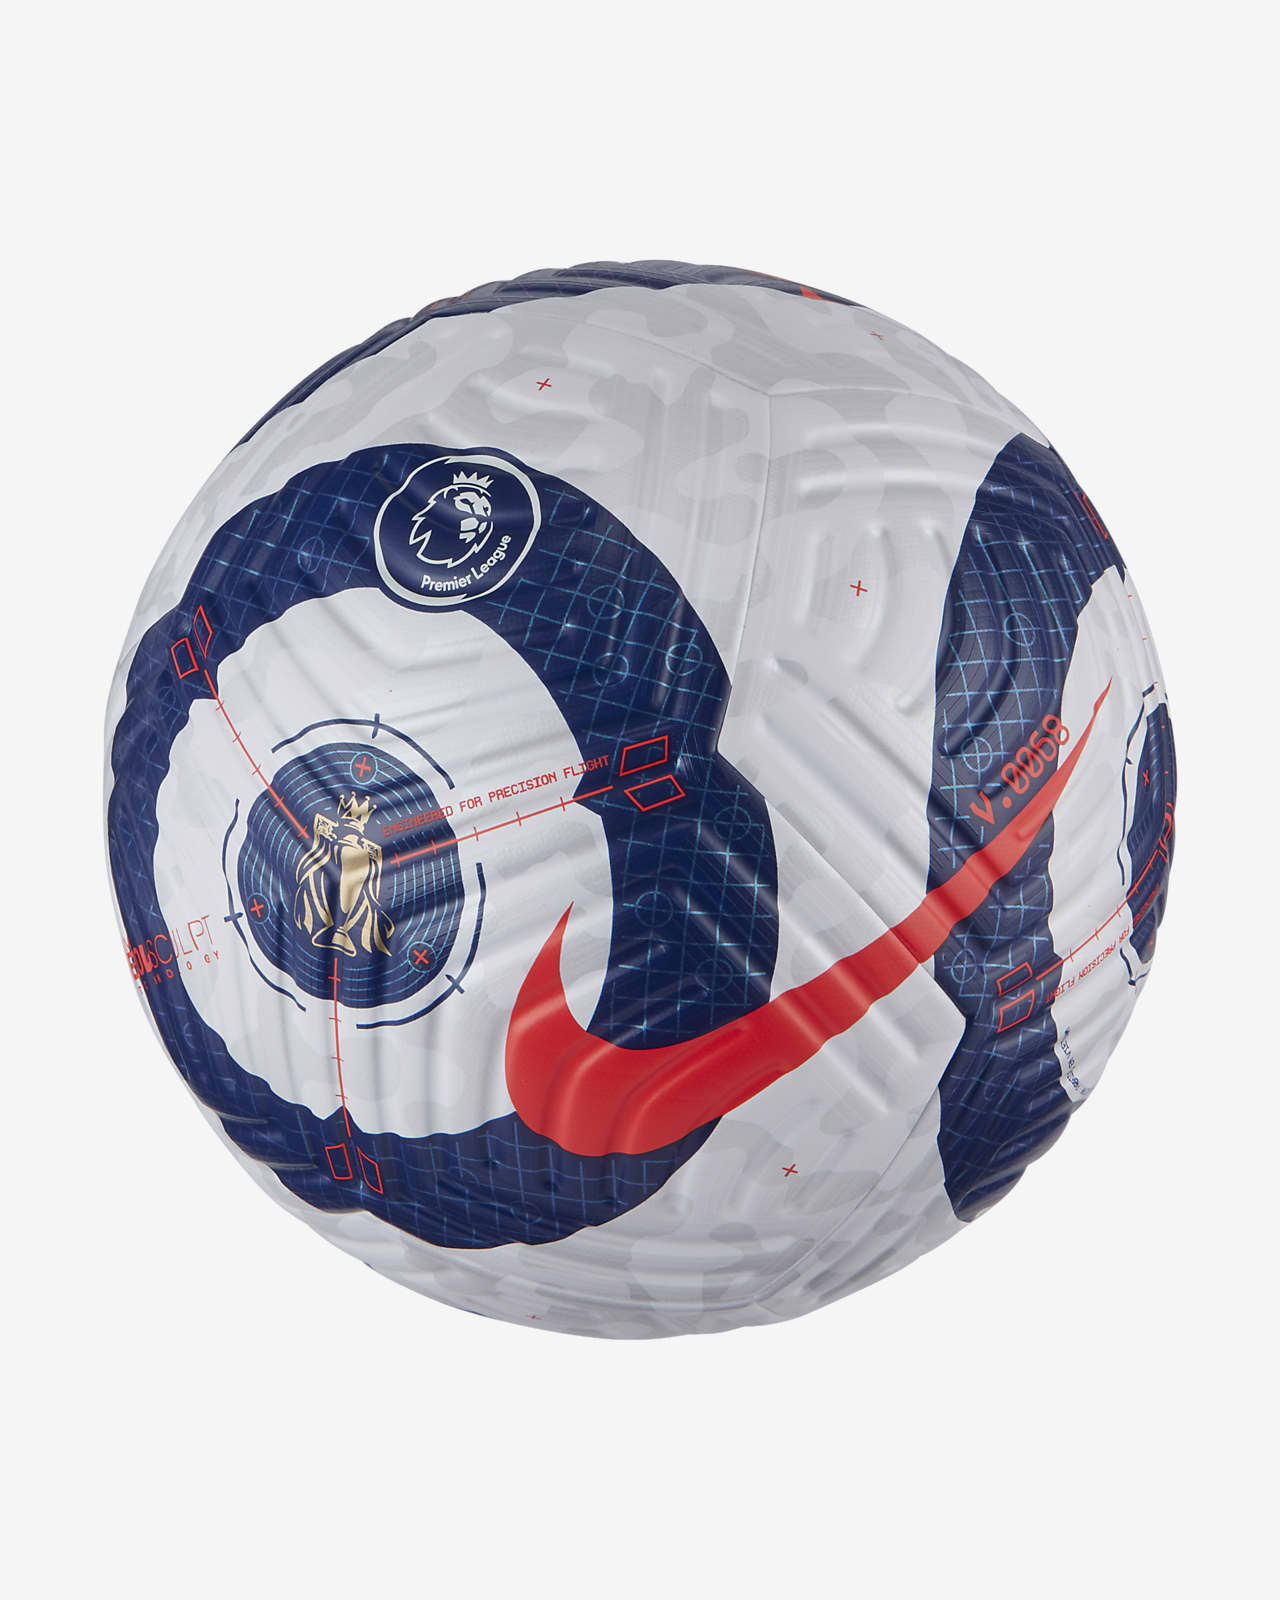 Nike Football dévoile un nouveau ballon de foot en Premier League